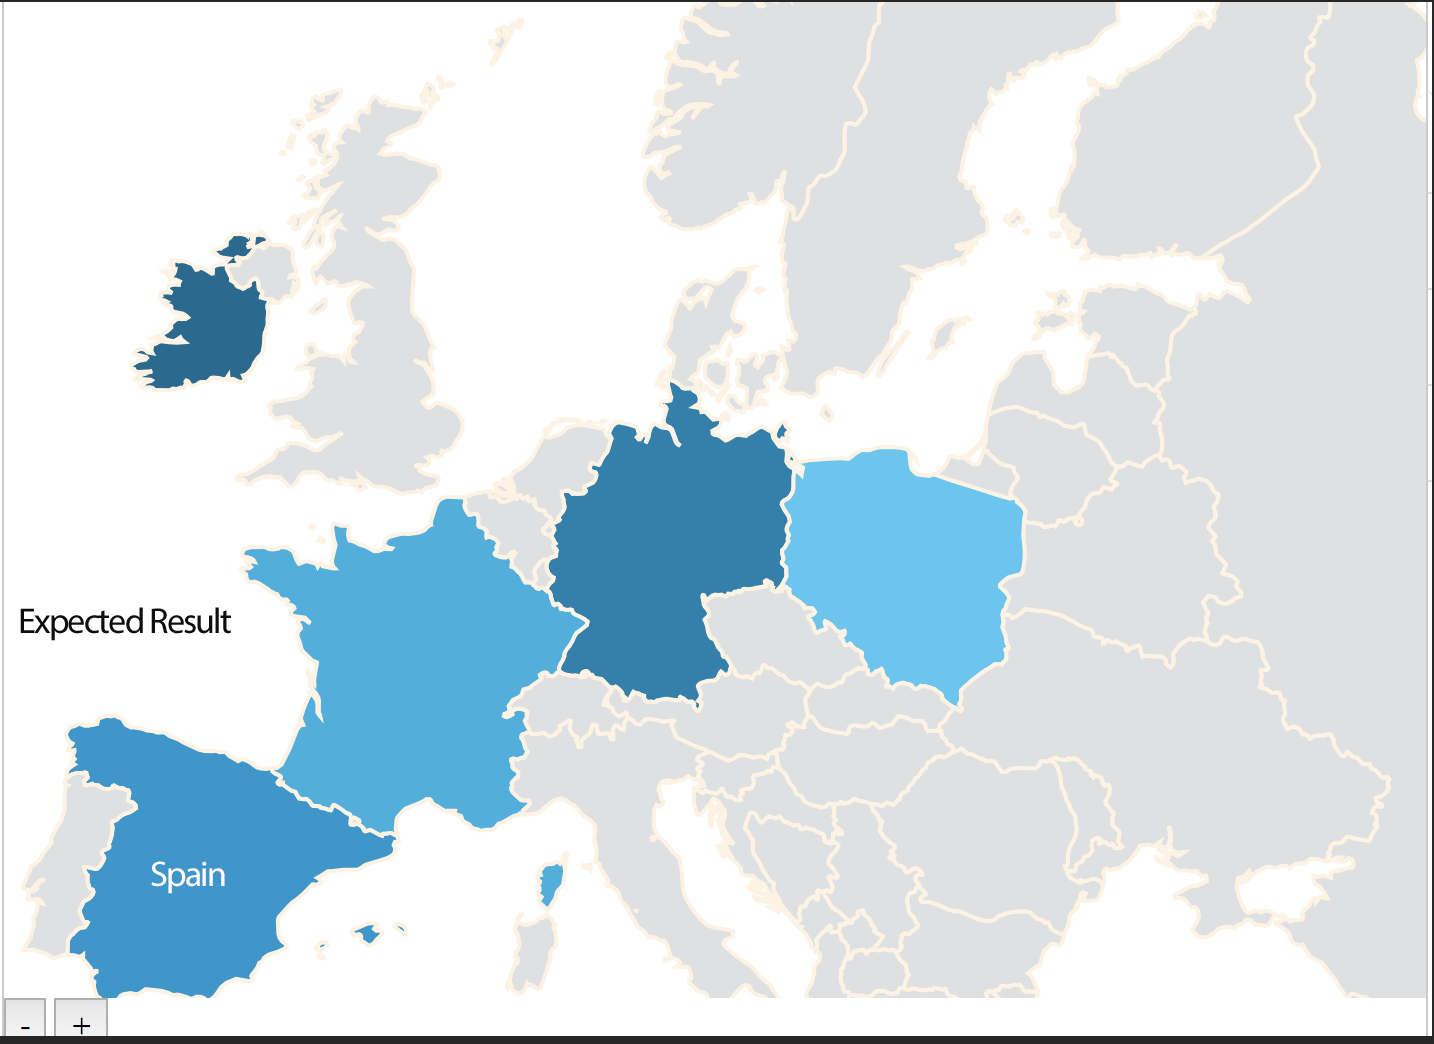 Map Of Spain To Label.Map Label Is Not Showing For Europe In Datamaps Issue 453